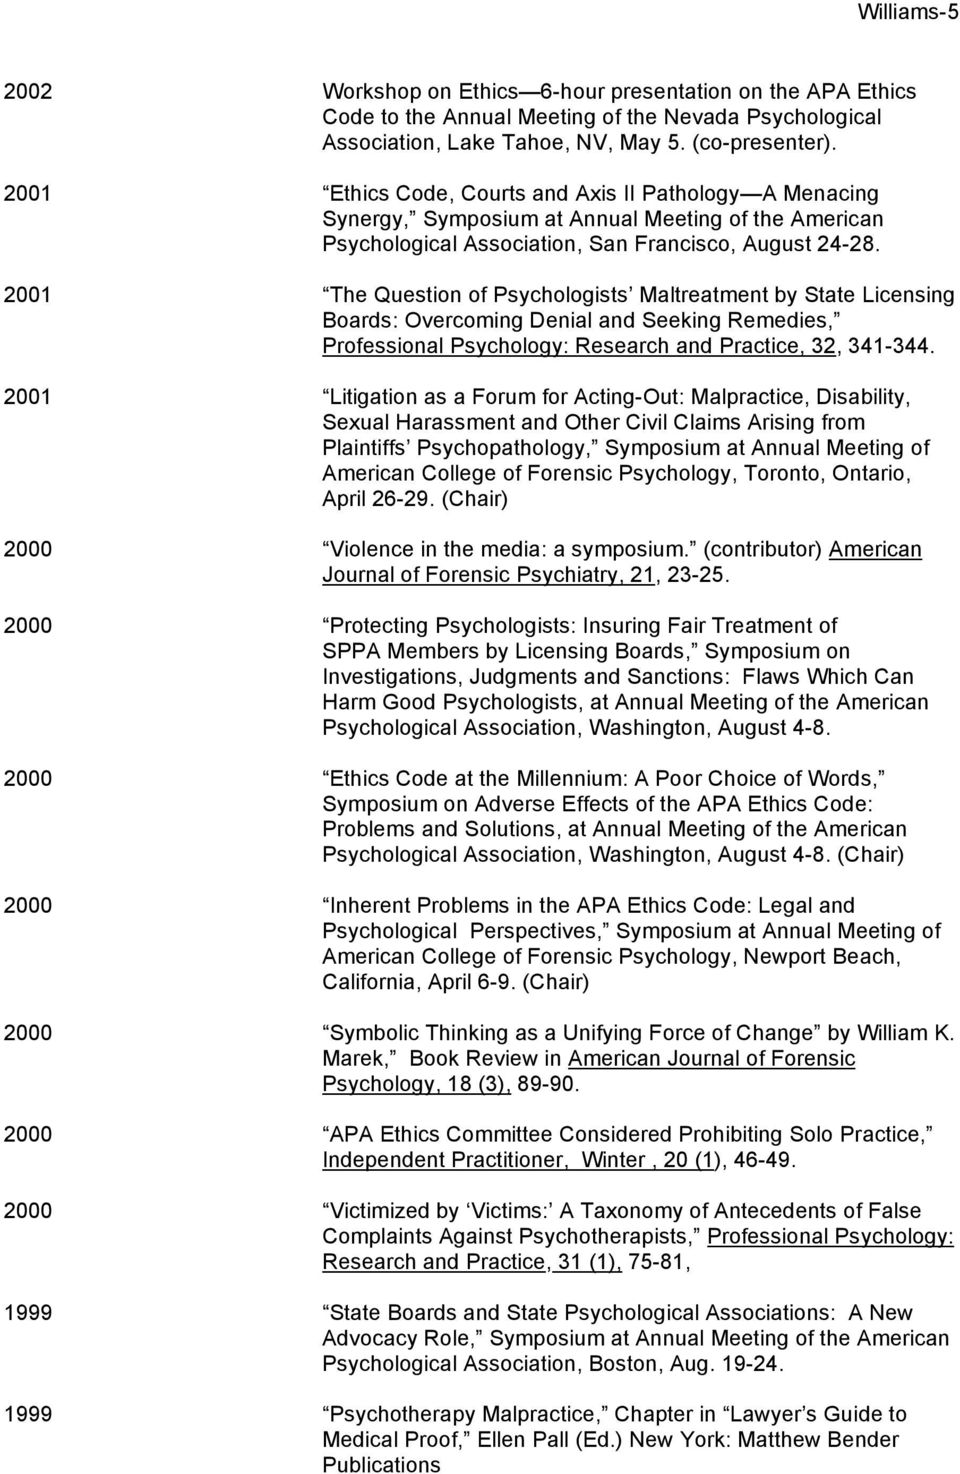 2001 The Question of Psychologists Maltreatment by State Licensing Boards: Overcoming Denial and Seeking Remedies, Professional Psychology: Research and Practice, 32, 341-344.